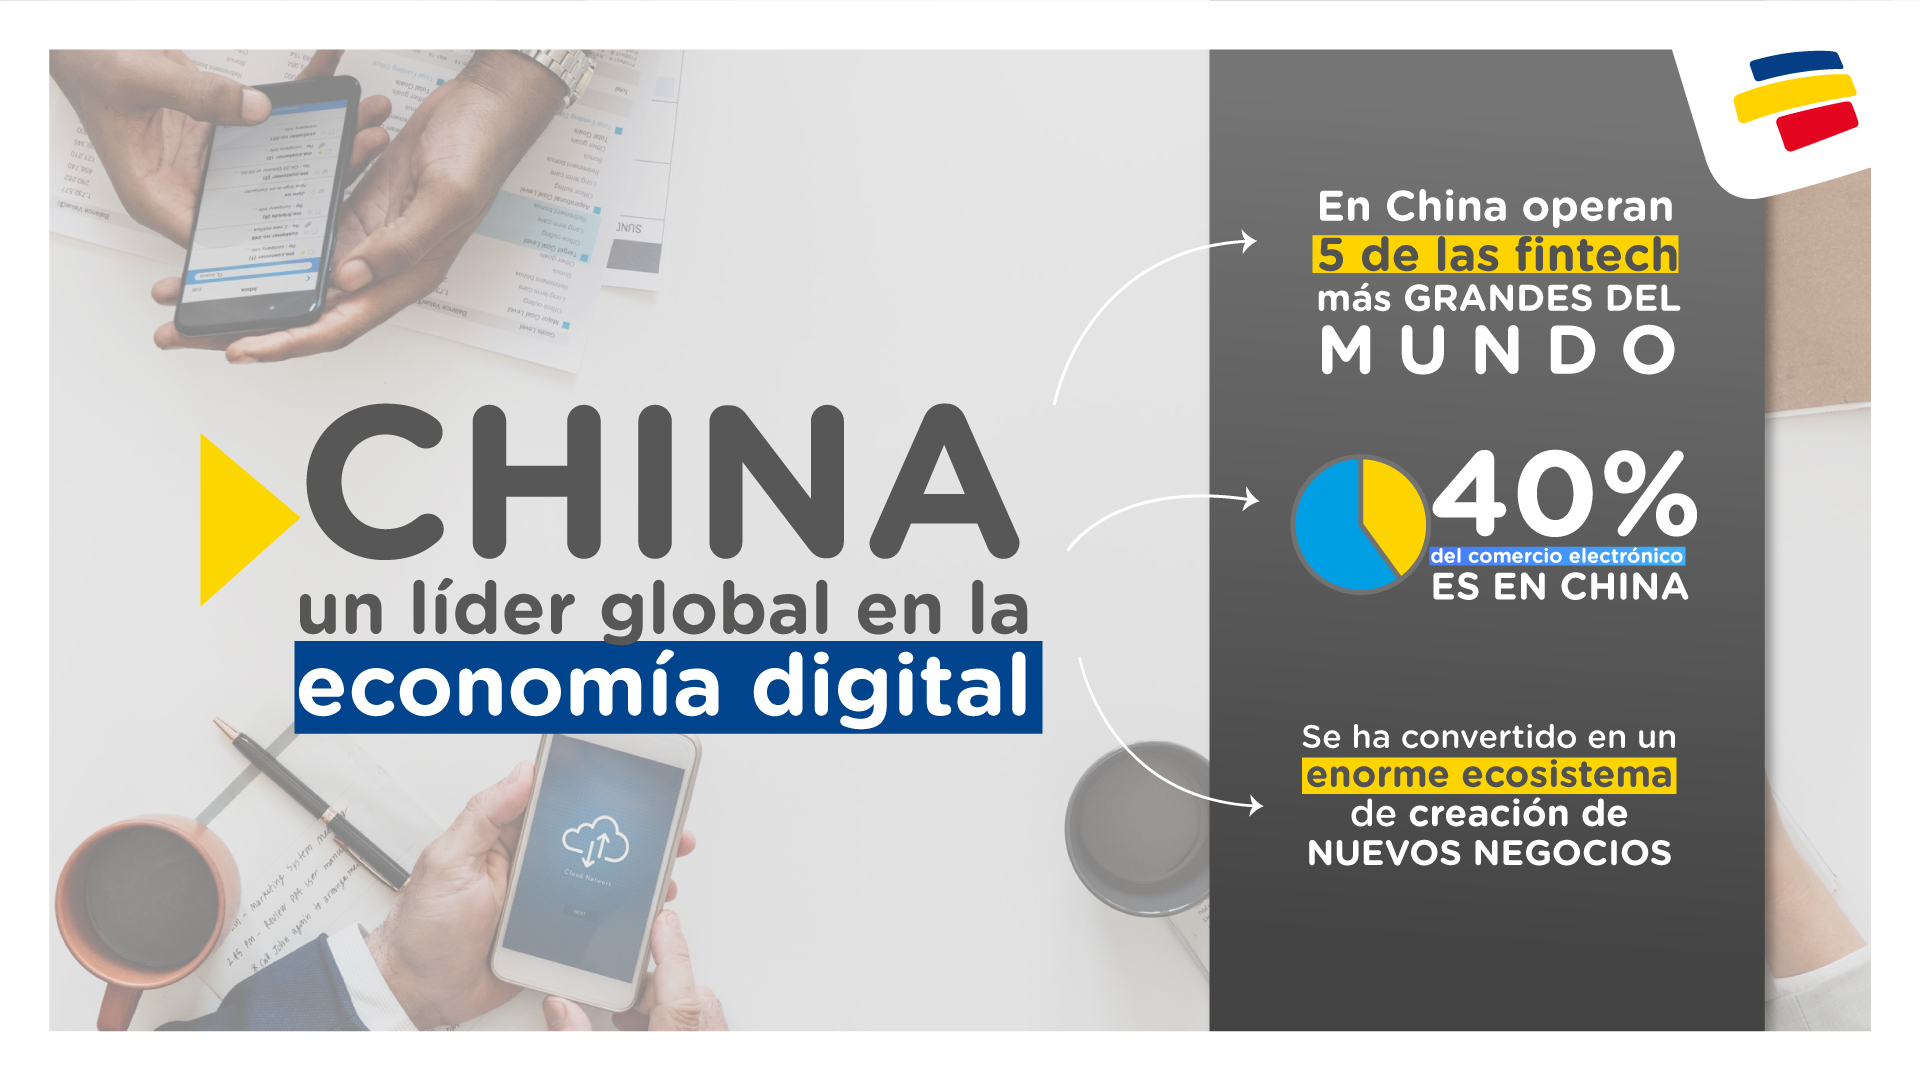 Infografía- China- Un lider global en la economia digital